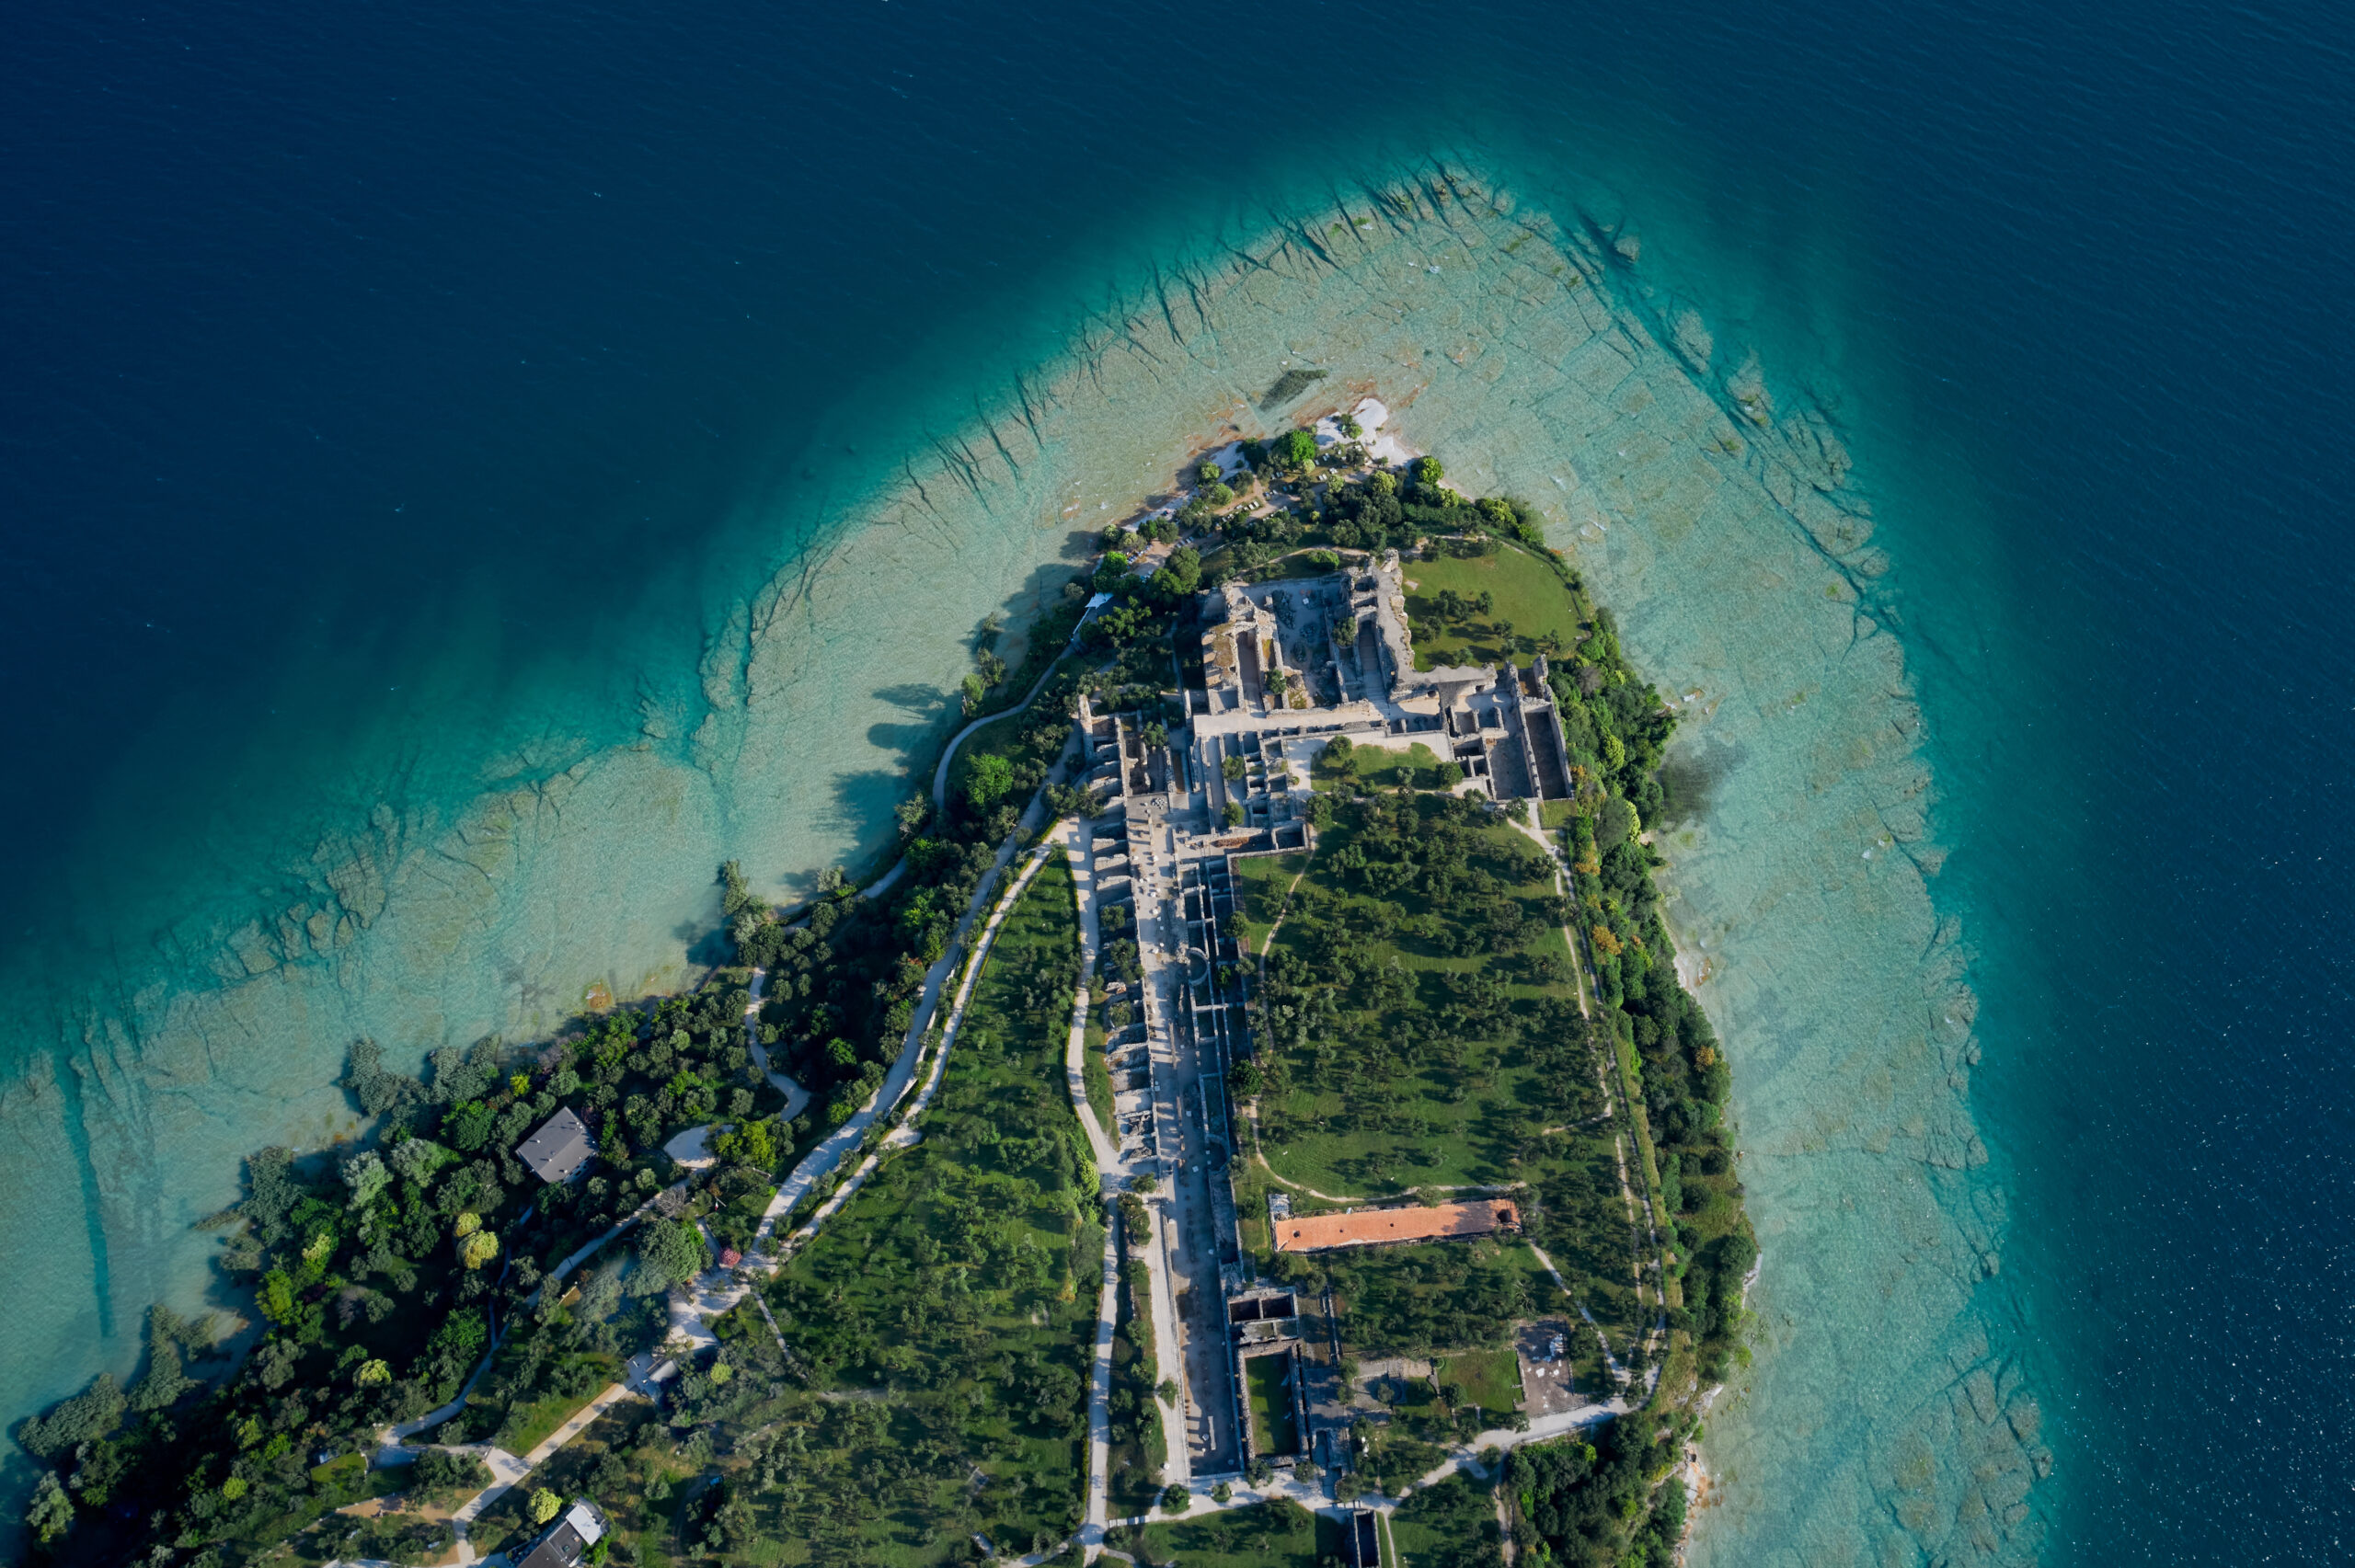 The view of cryptoporticus roman ruins Grotte di Catullo. Archaeological site of Grotte di Catullo, Sirmione, Italy early morning aerial view. lake garda.